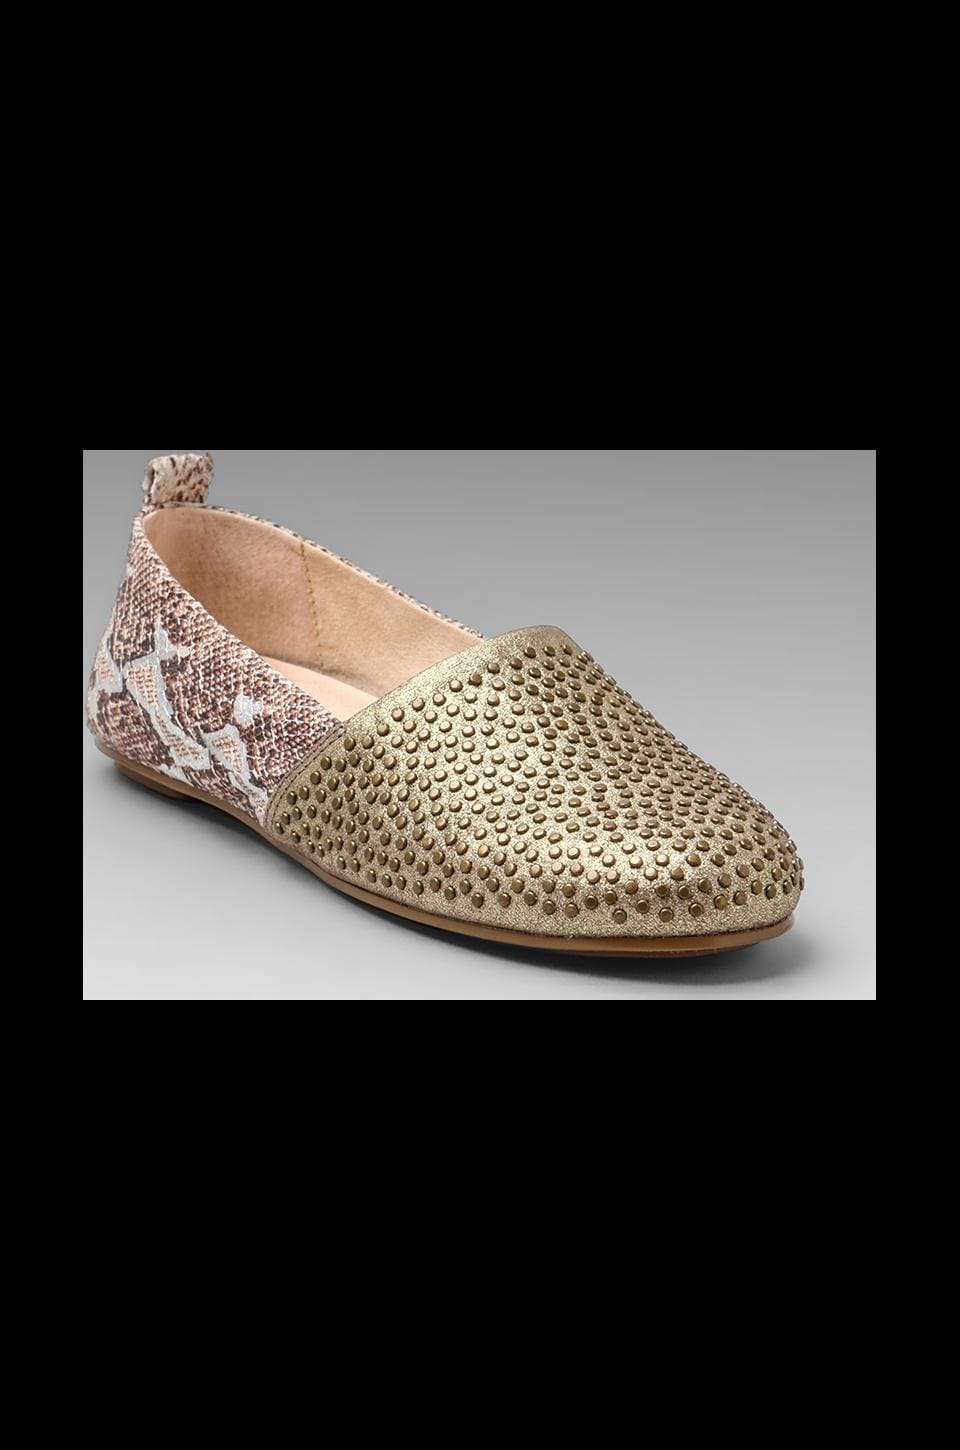 House of Harlow Stud Kye Flat in Brown/Rosegold